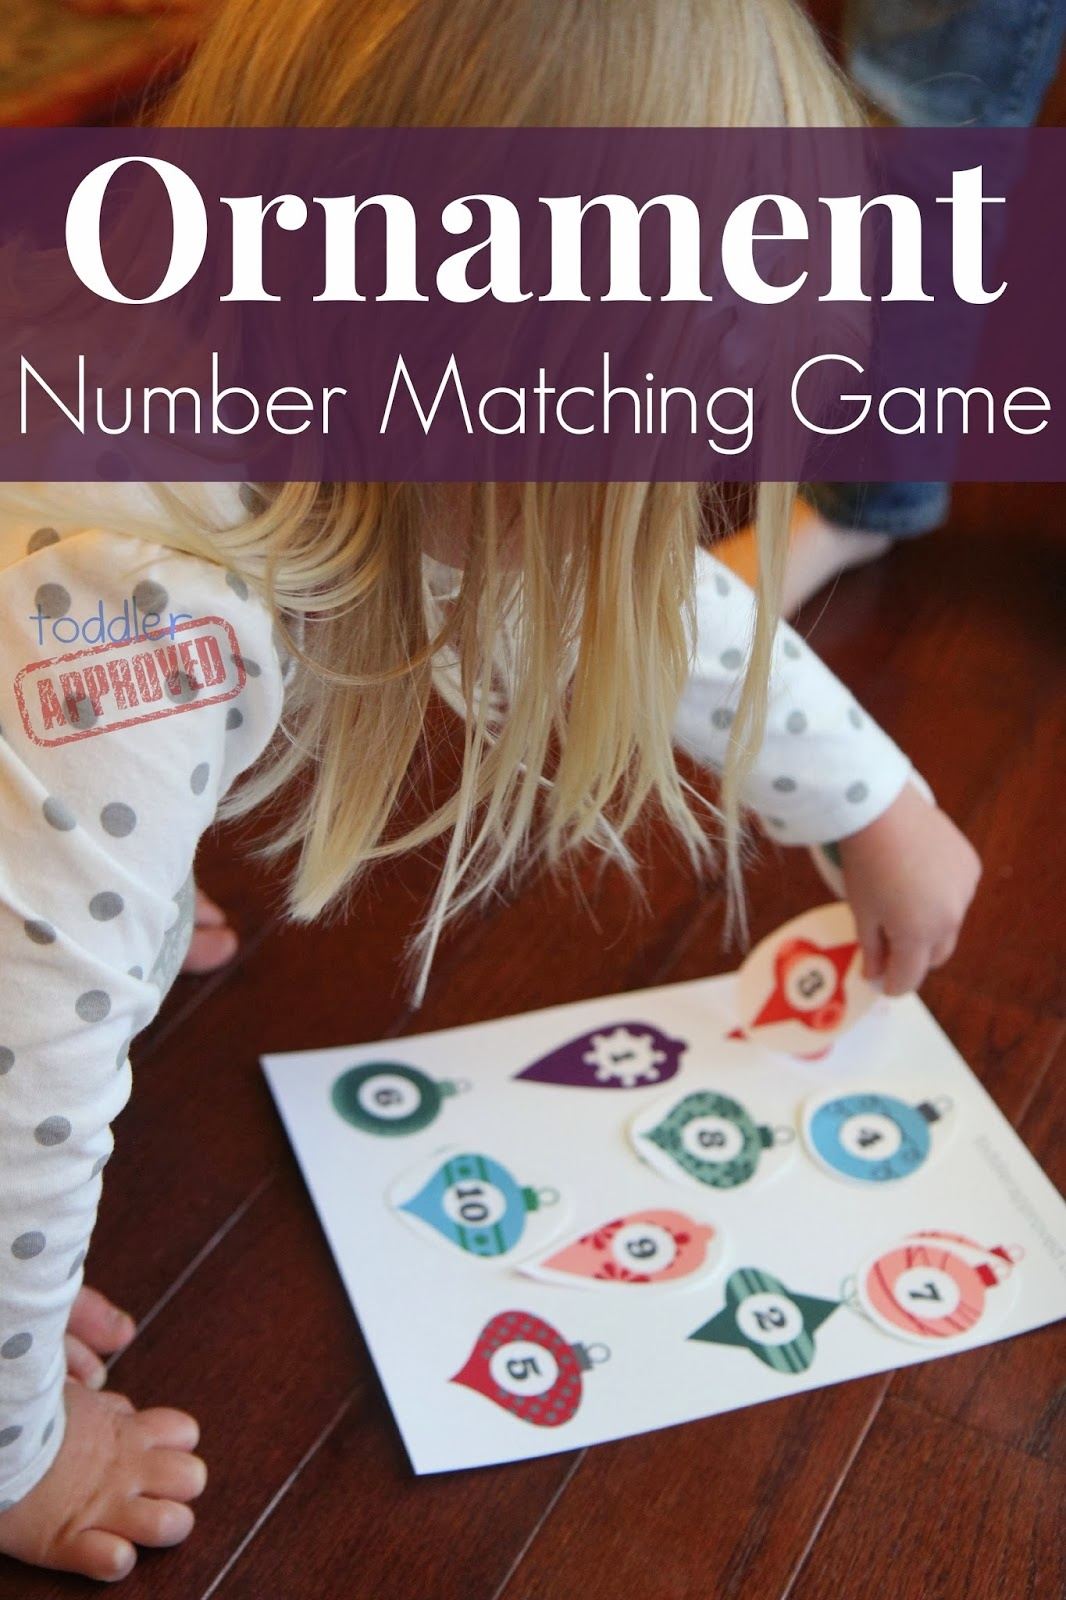 Toddler Approved!: Ornament Number Matching Game {+ Free Printable} - Free Printable Toddler Matching Games